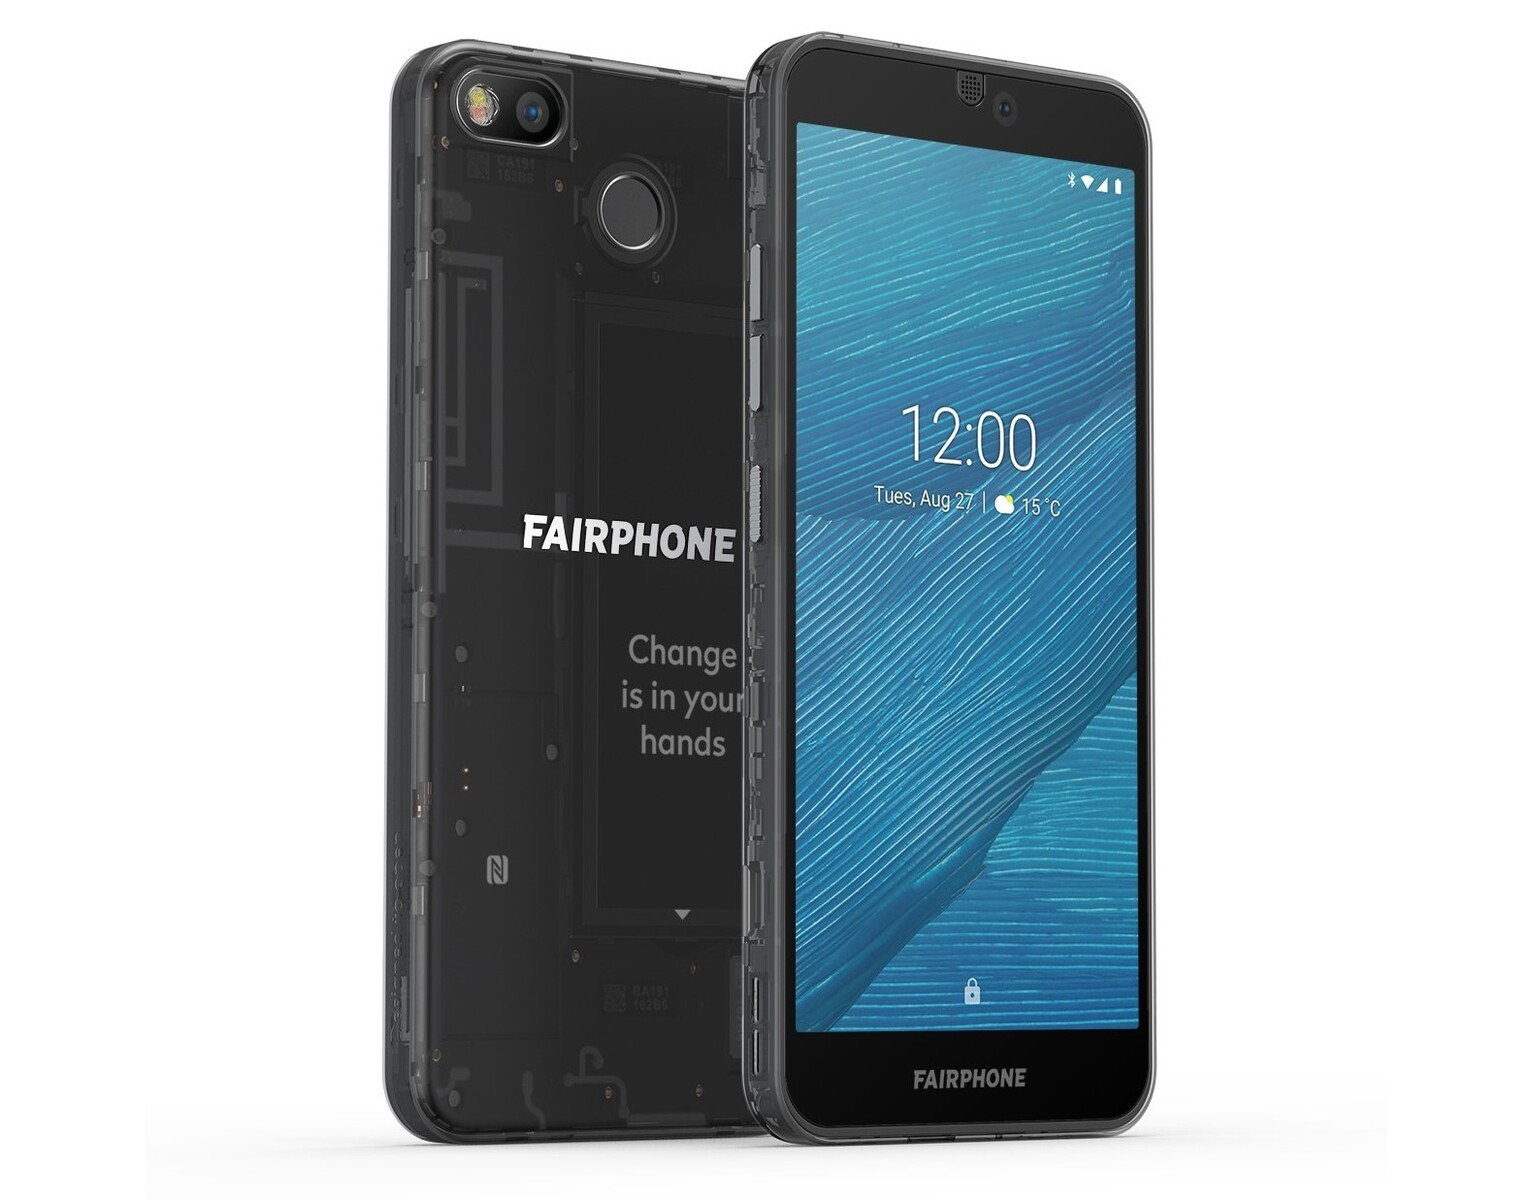 Fairphone 3 smartphone gets official